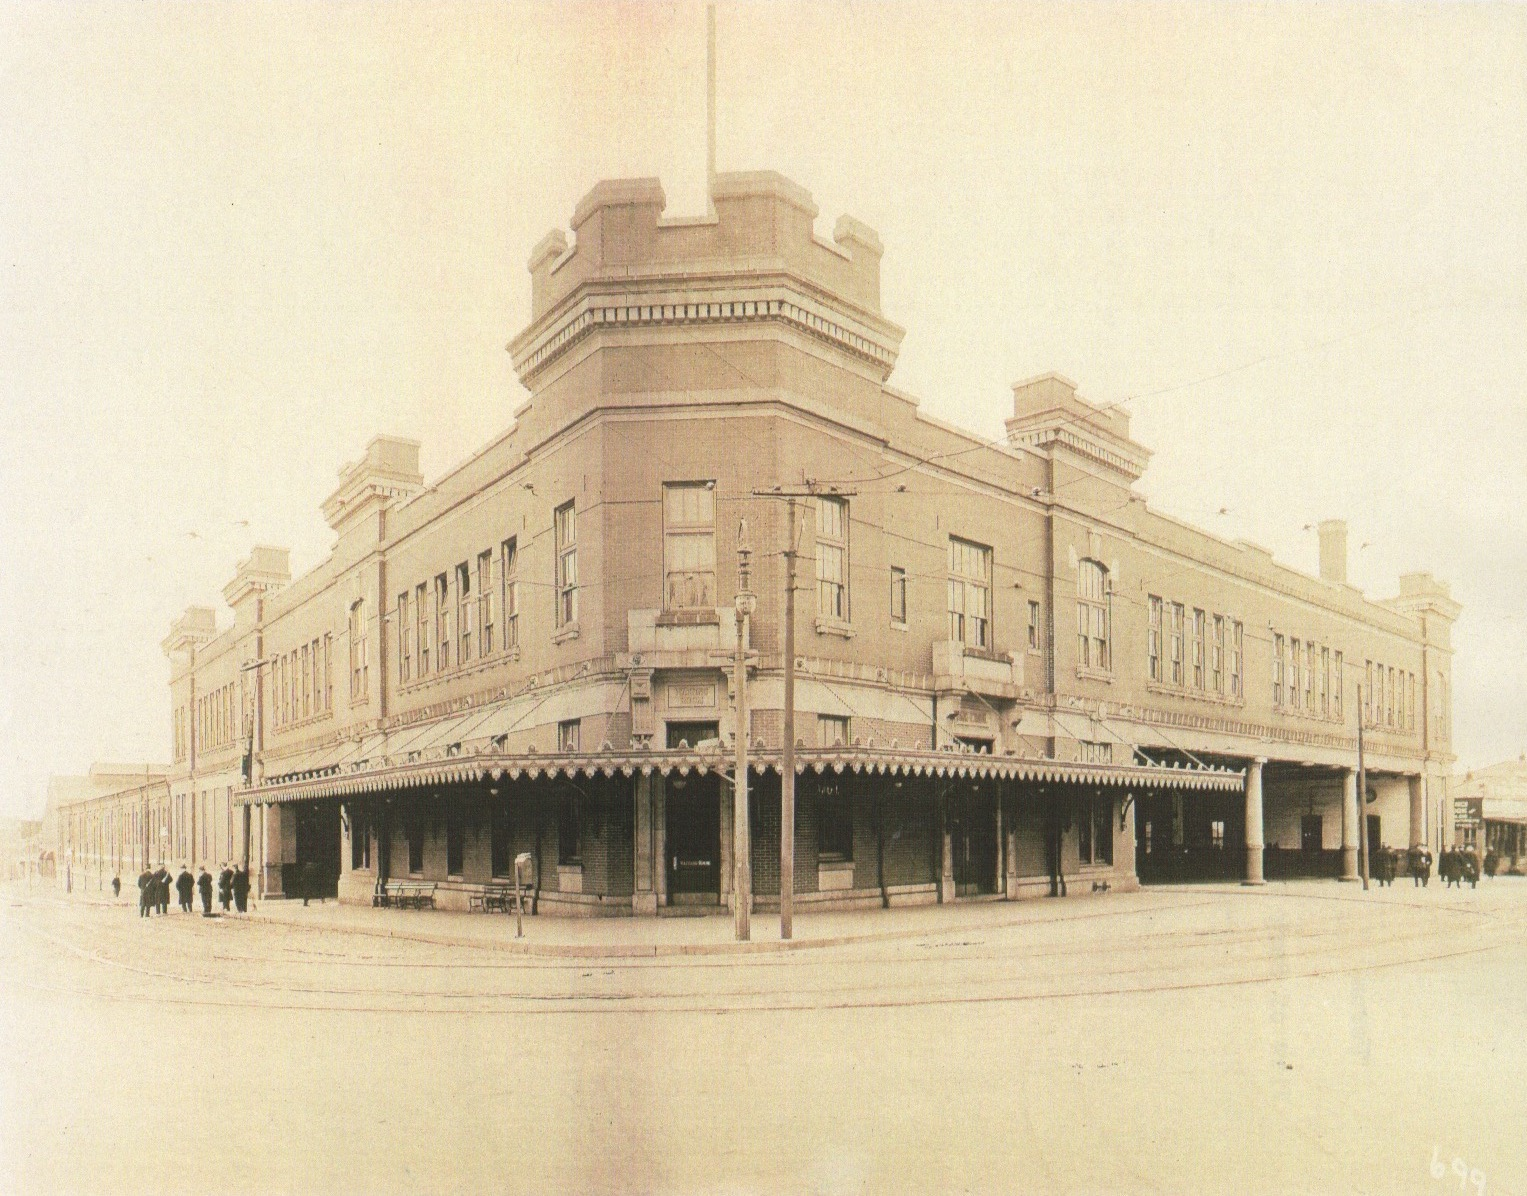 Image Credit: BSM Archives, Park Terminal, approx 1910